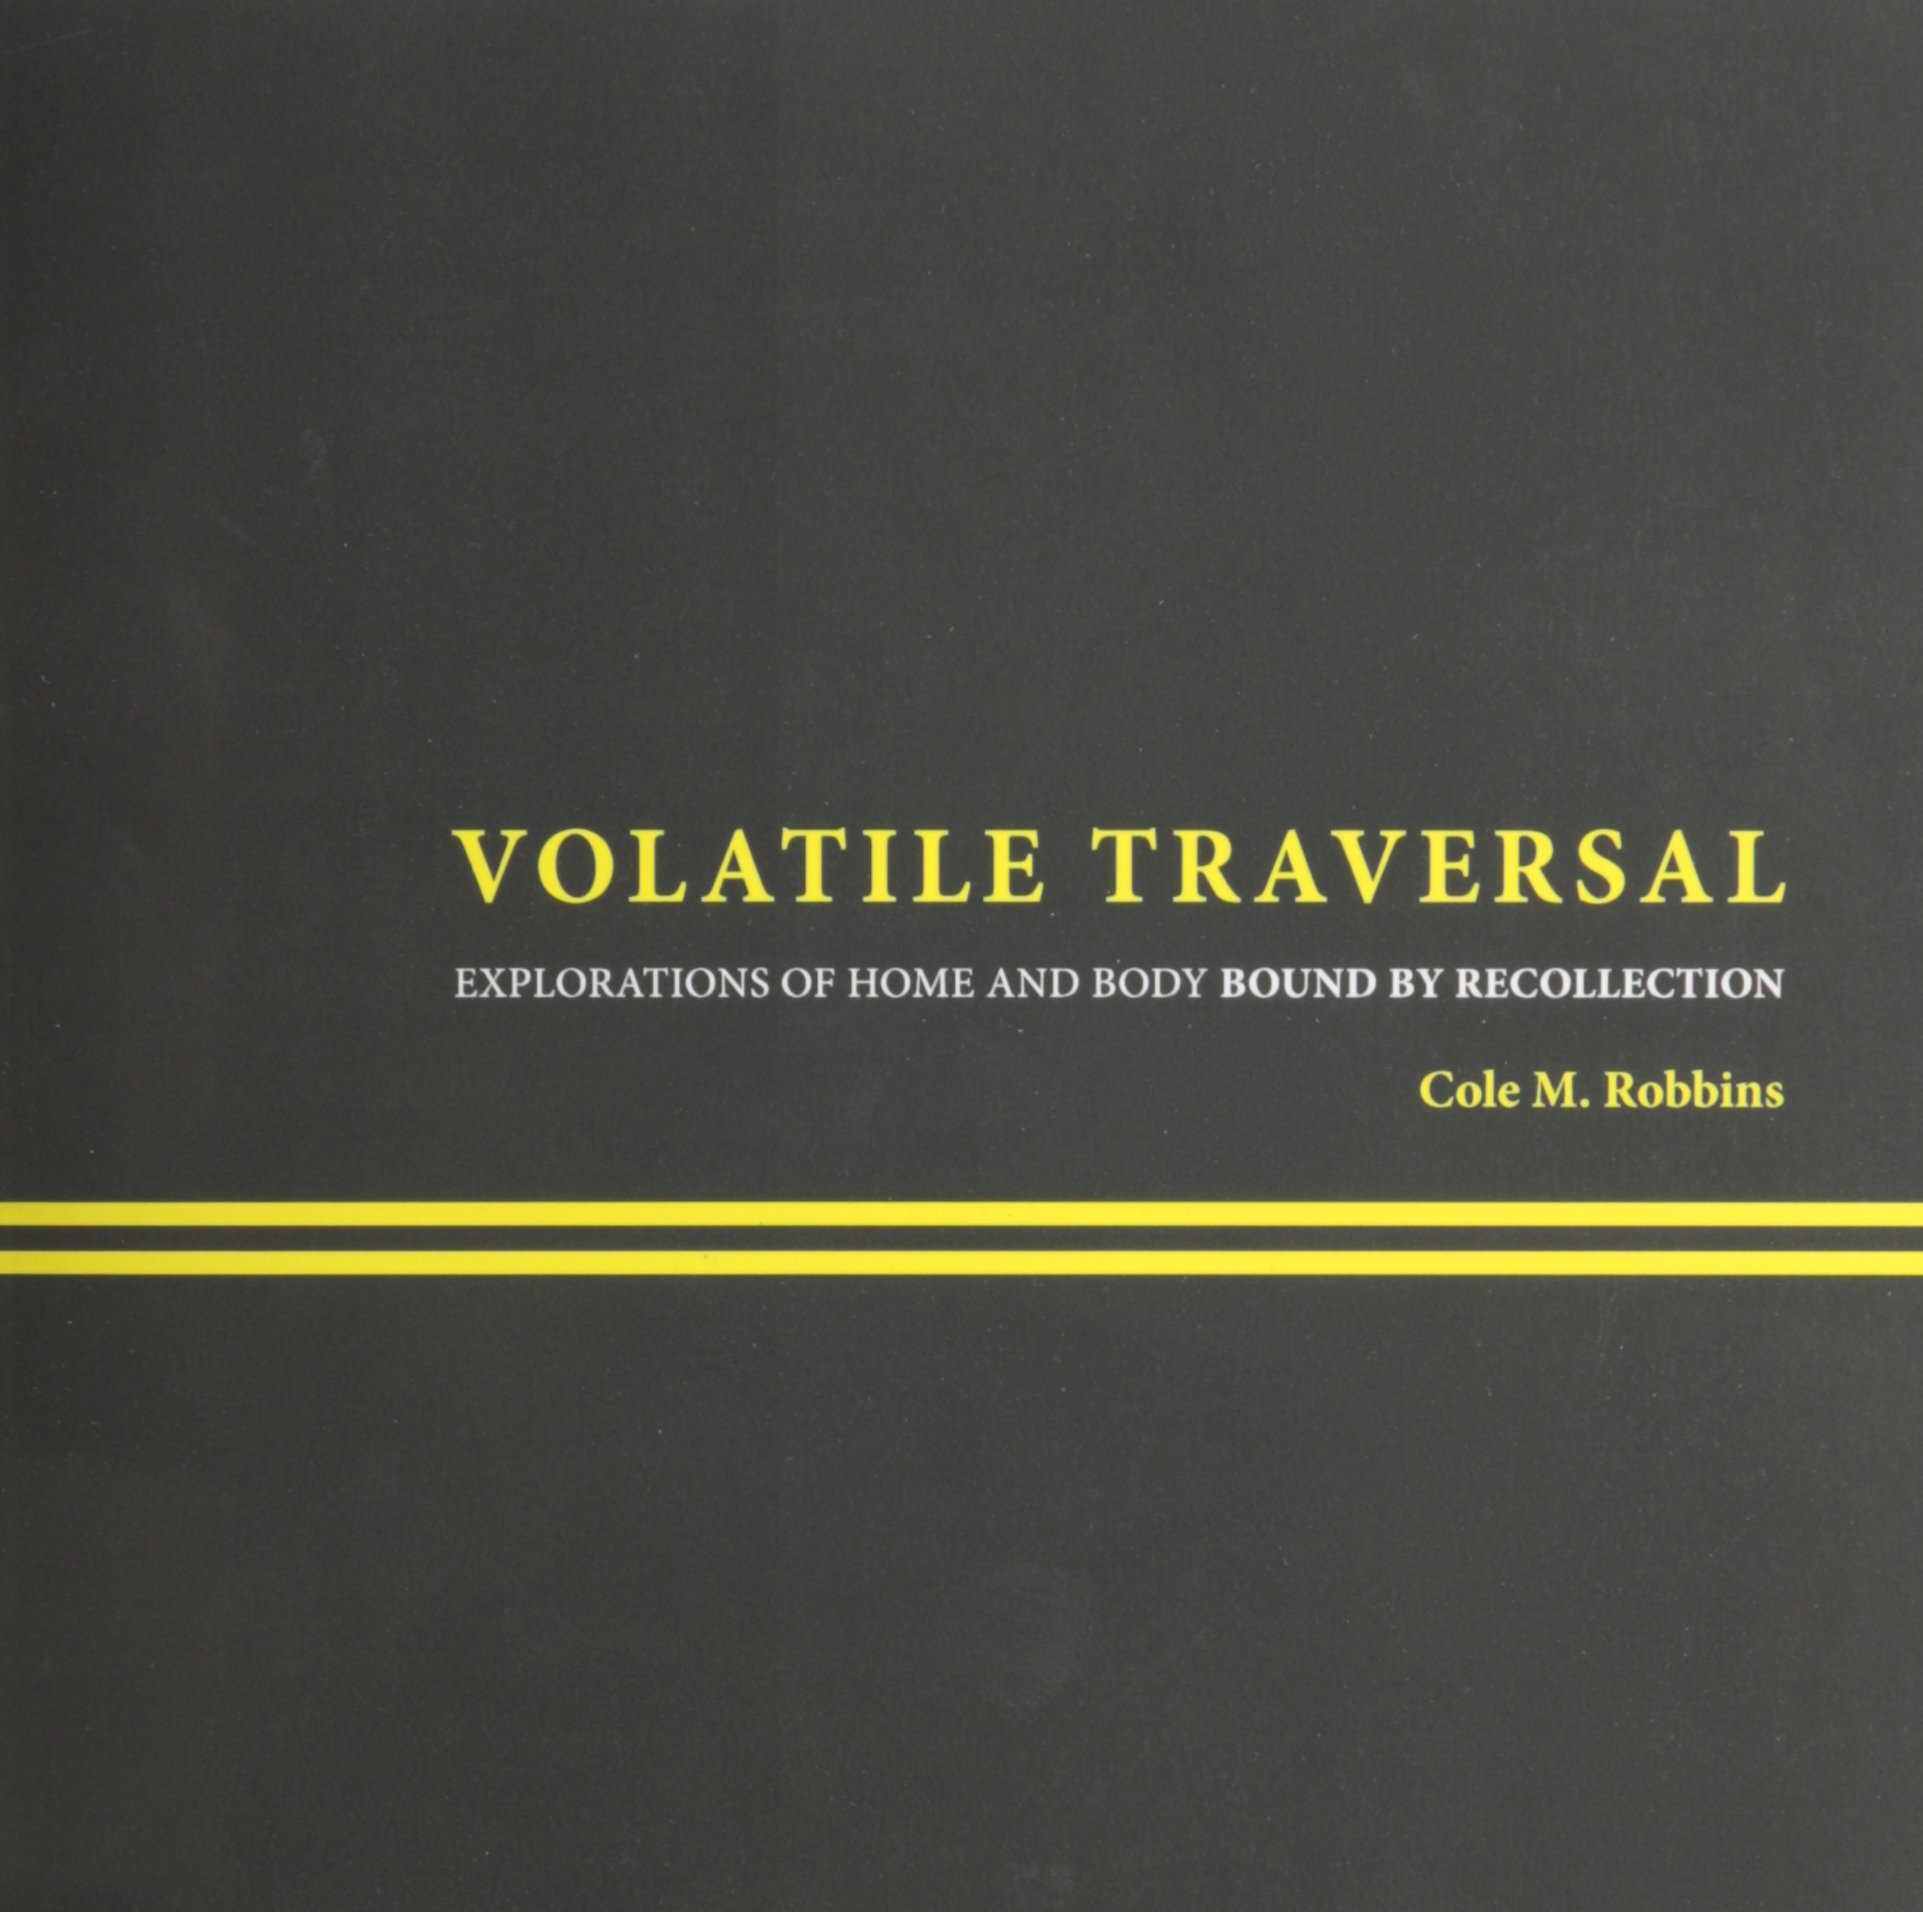 Volatile Traversal: Explorations of Home and Body Bound by Recollection ebook